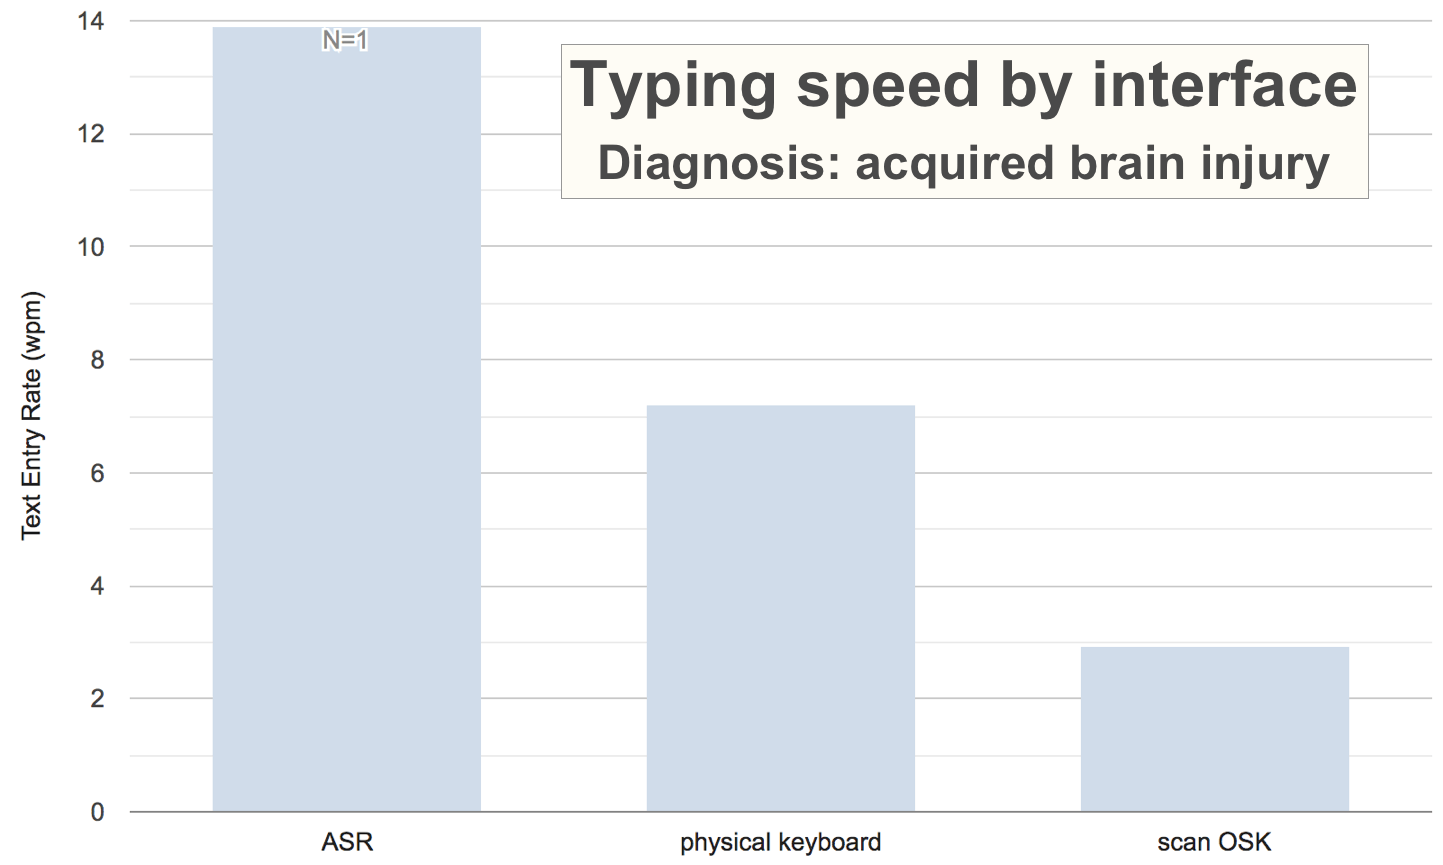 Bar graph from an AT-node search, showing text entry rates reported for users with acquired brain injury, for 3 different interfaces. Automatic Speech Recognition has the highest average text entry rate, almost 14 words per minute, but N=1. Physical keyboard is 7.2 wpm, and scanning on-screen keyboard at almost 3 wpm.